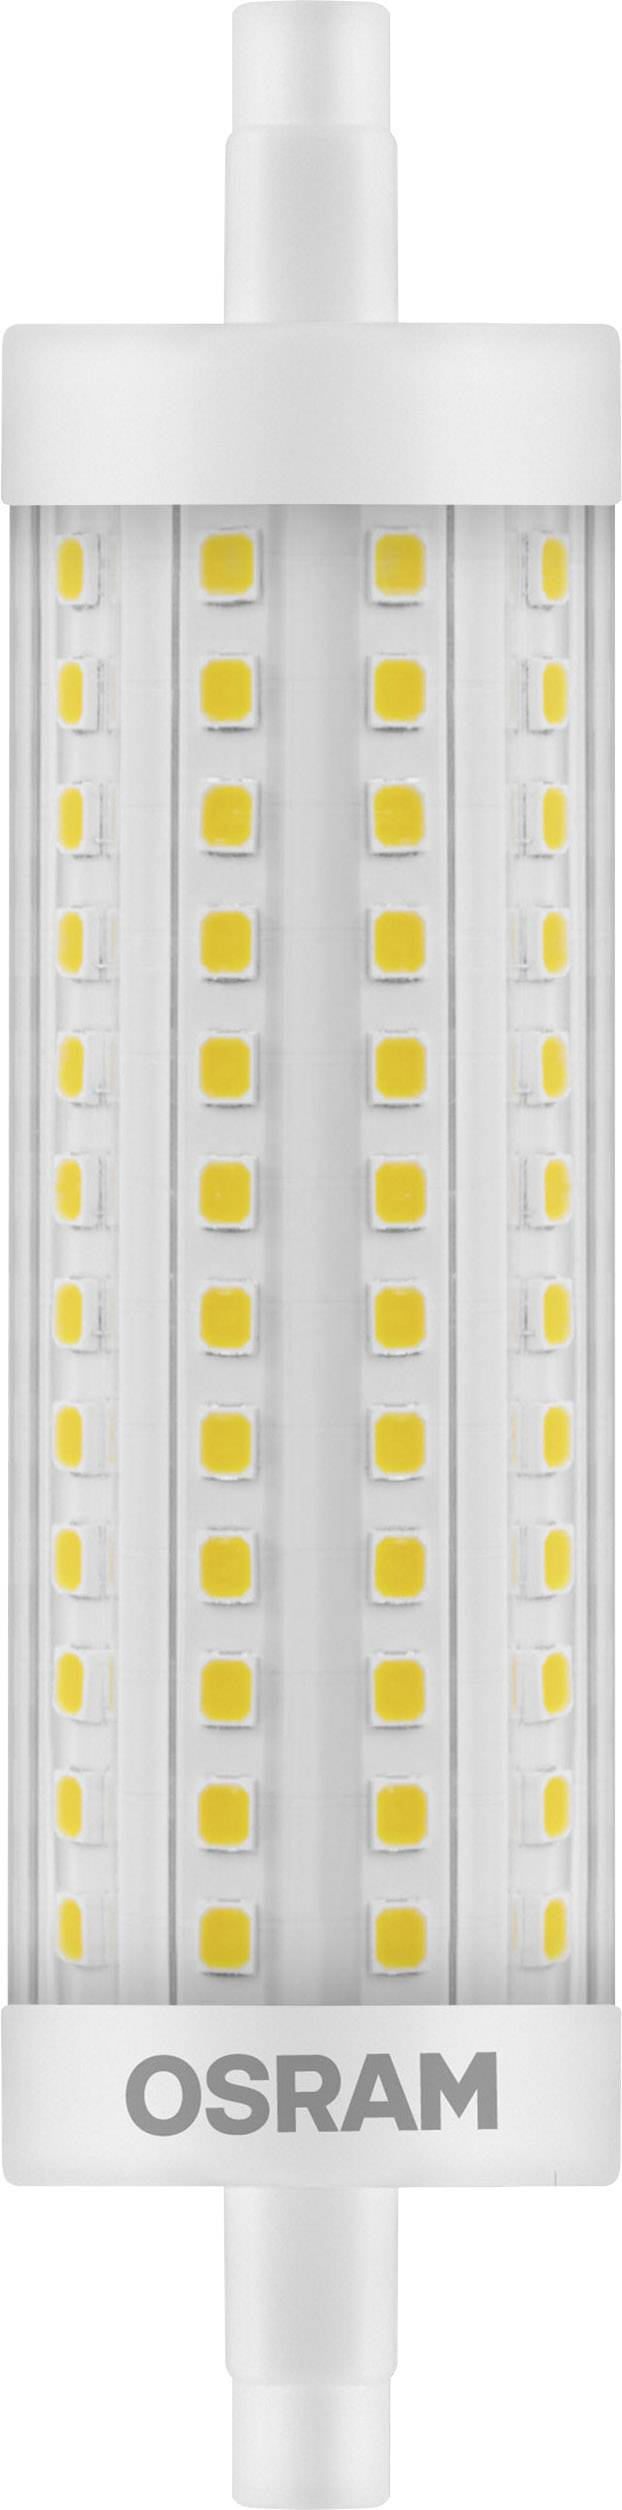 Led R7s Dimmbar Osram 4058075811744 Led (monochrome) Eec A++ (a++ - E) R7s Rod 15 W = 125 W Warm White (Ø X L) 29 Mm X 118 Mm Dimmable 1 | Conrad.com